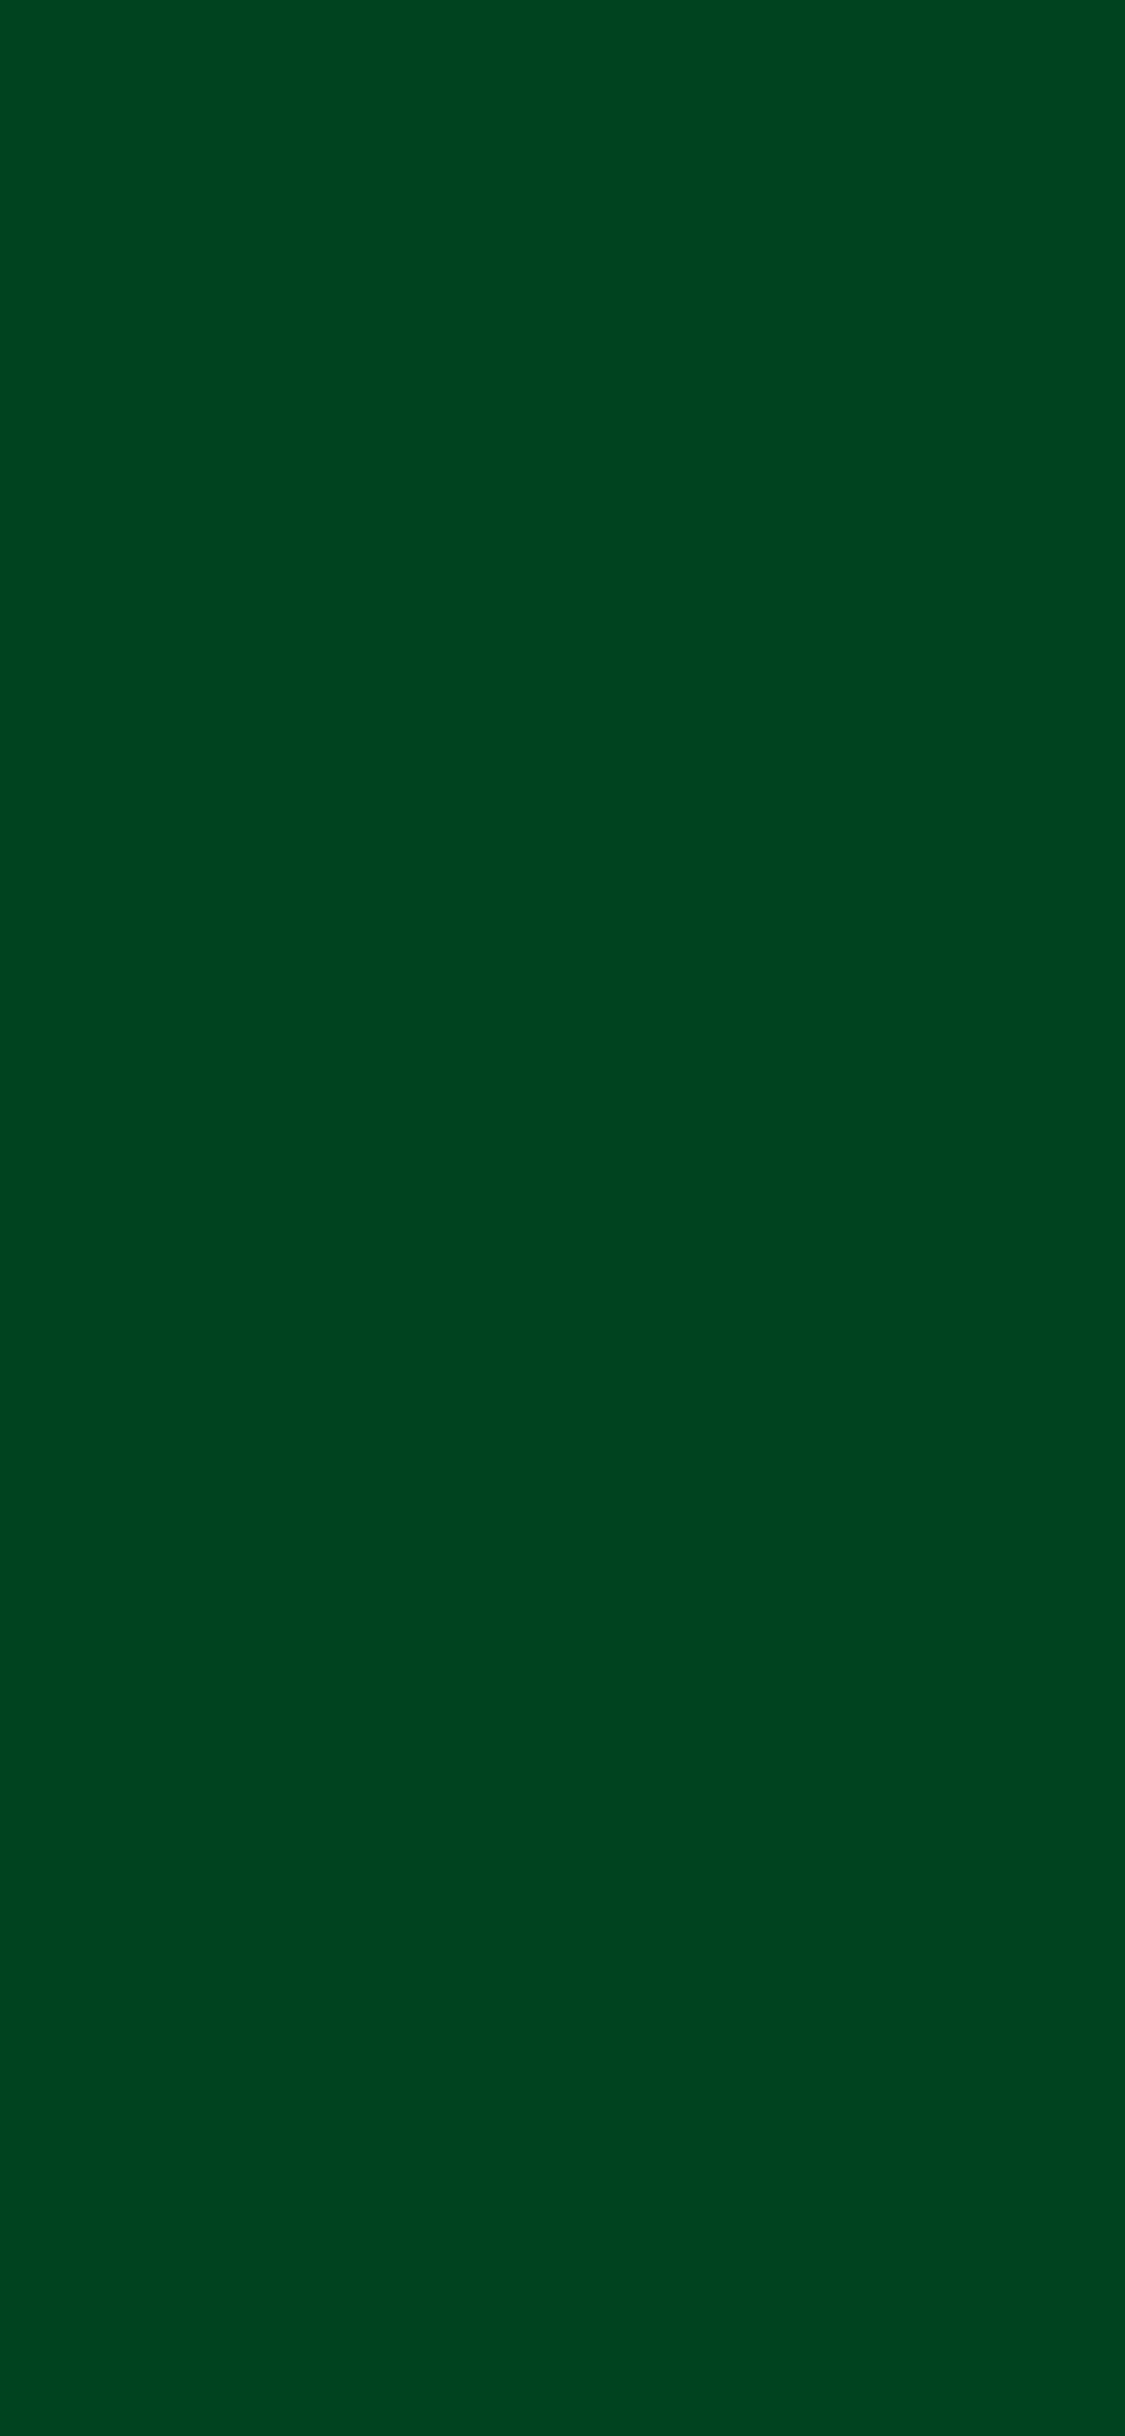 1125x2436 Forest Green Traditional Solid Color Background